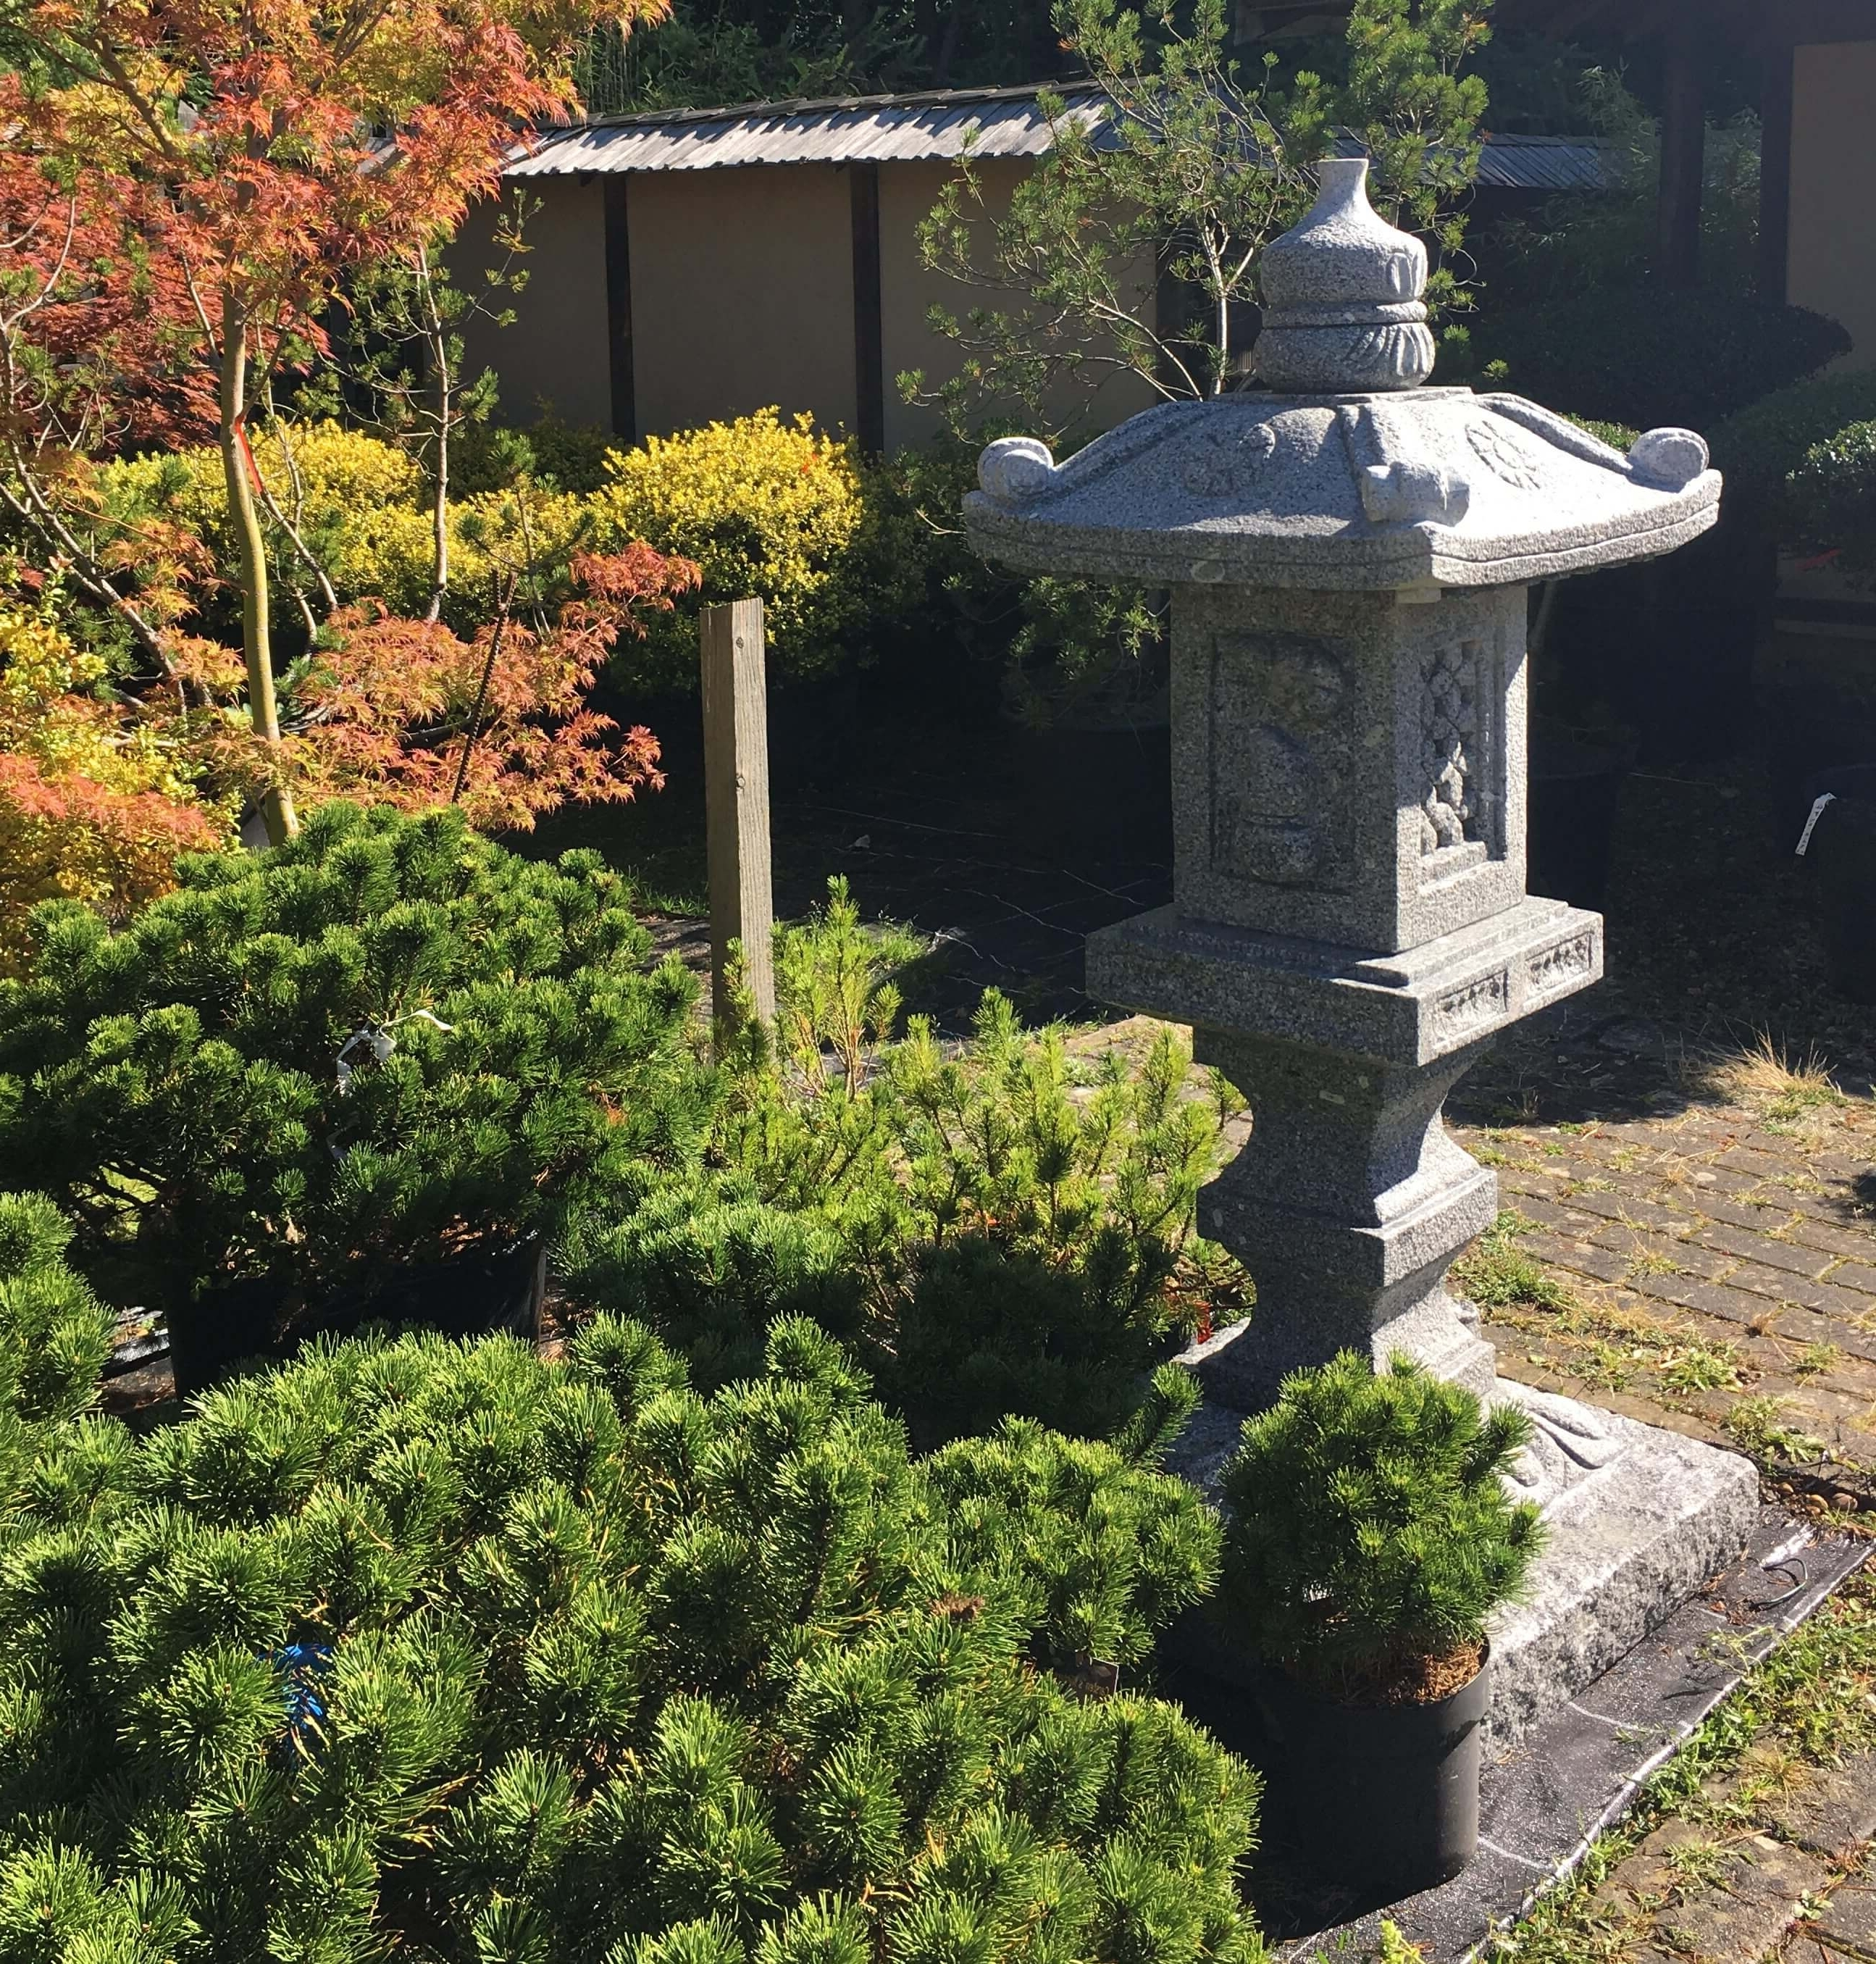 Outdoor Japanese Lanterns For Sale Regarding Most Up To Date Japanese Stone Garden Lanterns For Sale Uk Statues Statue Lantern (Gallery 18 of 20)